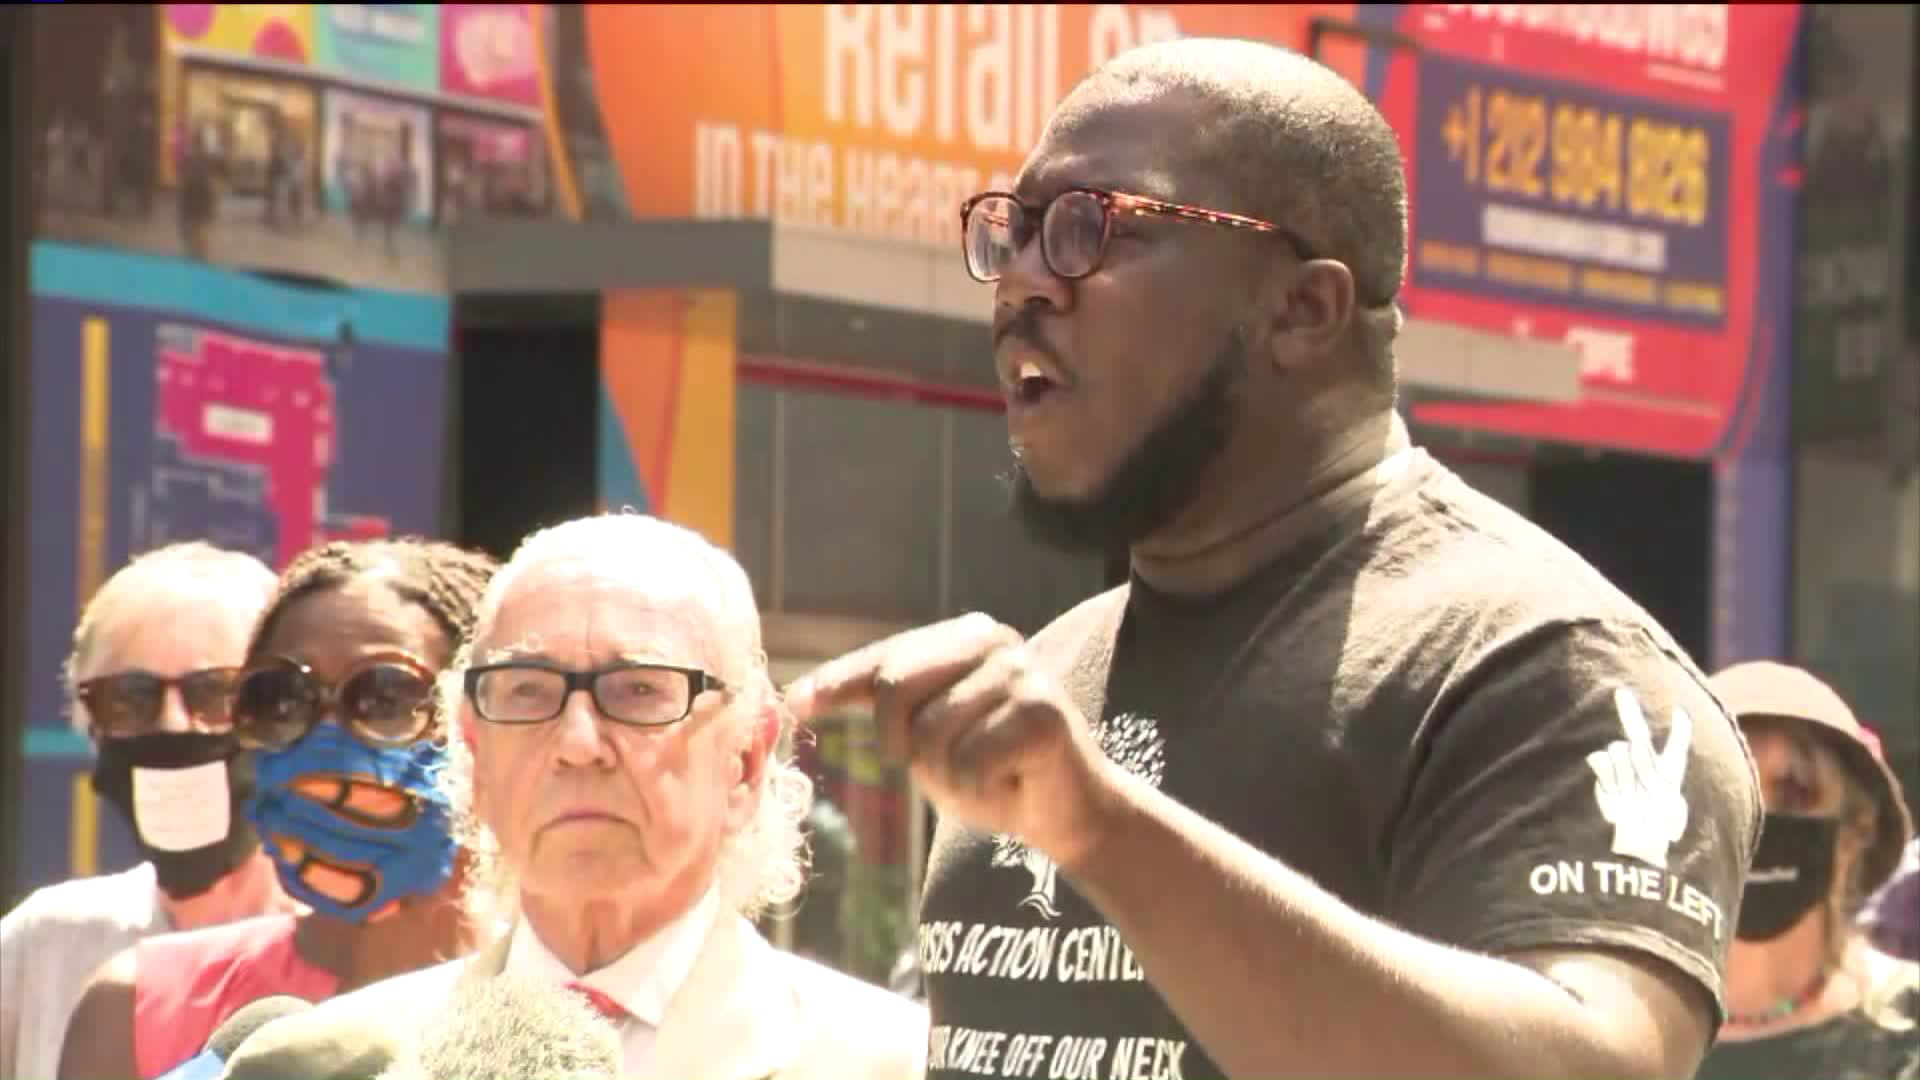 Auto drives through Black Lives Matter crowd in Times Square